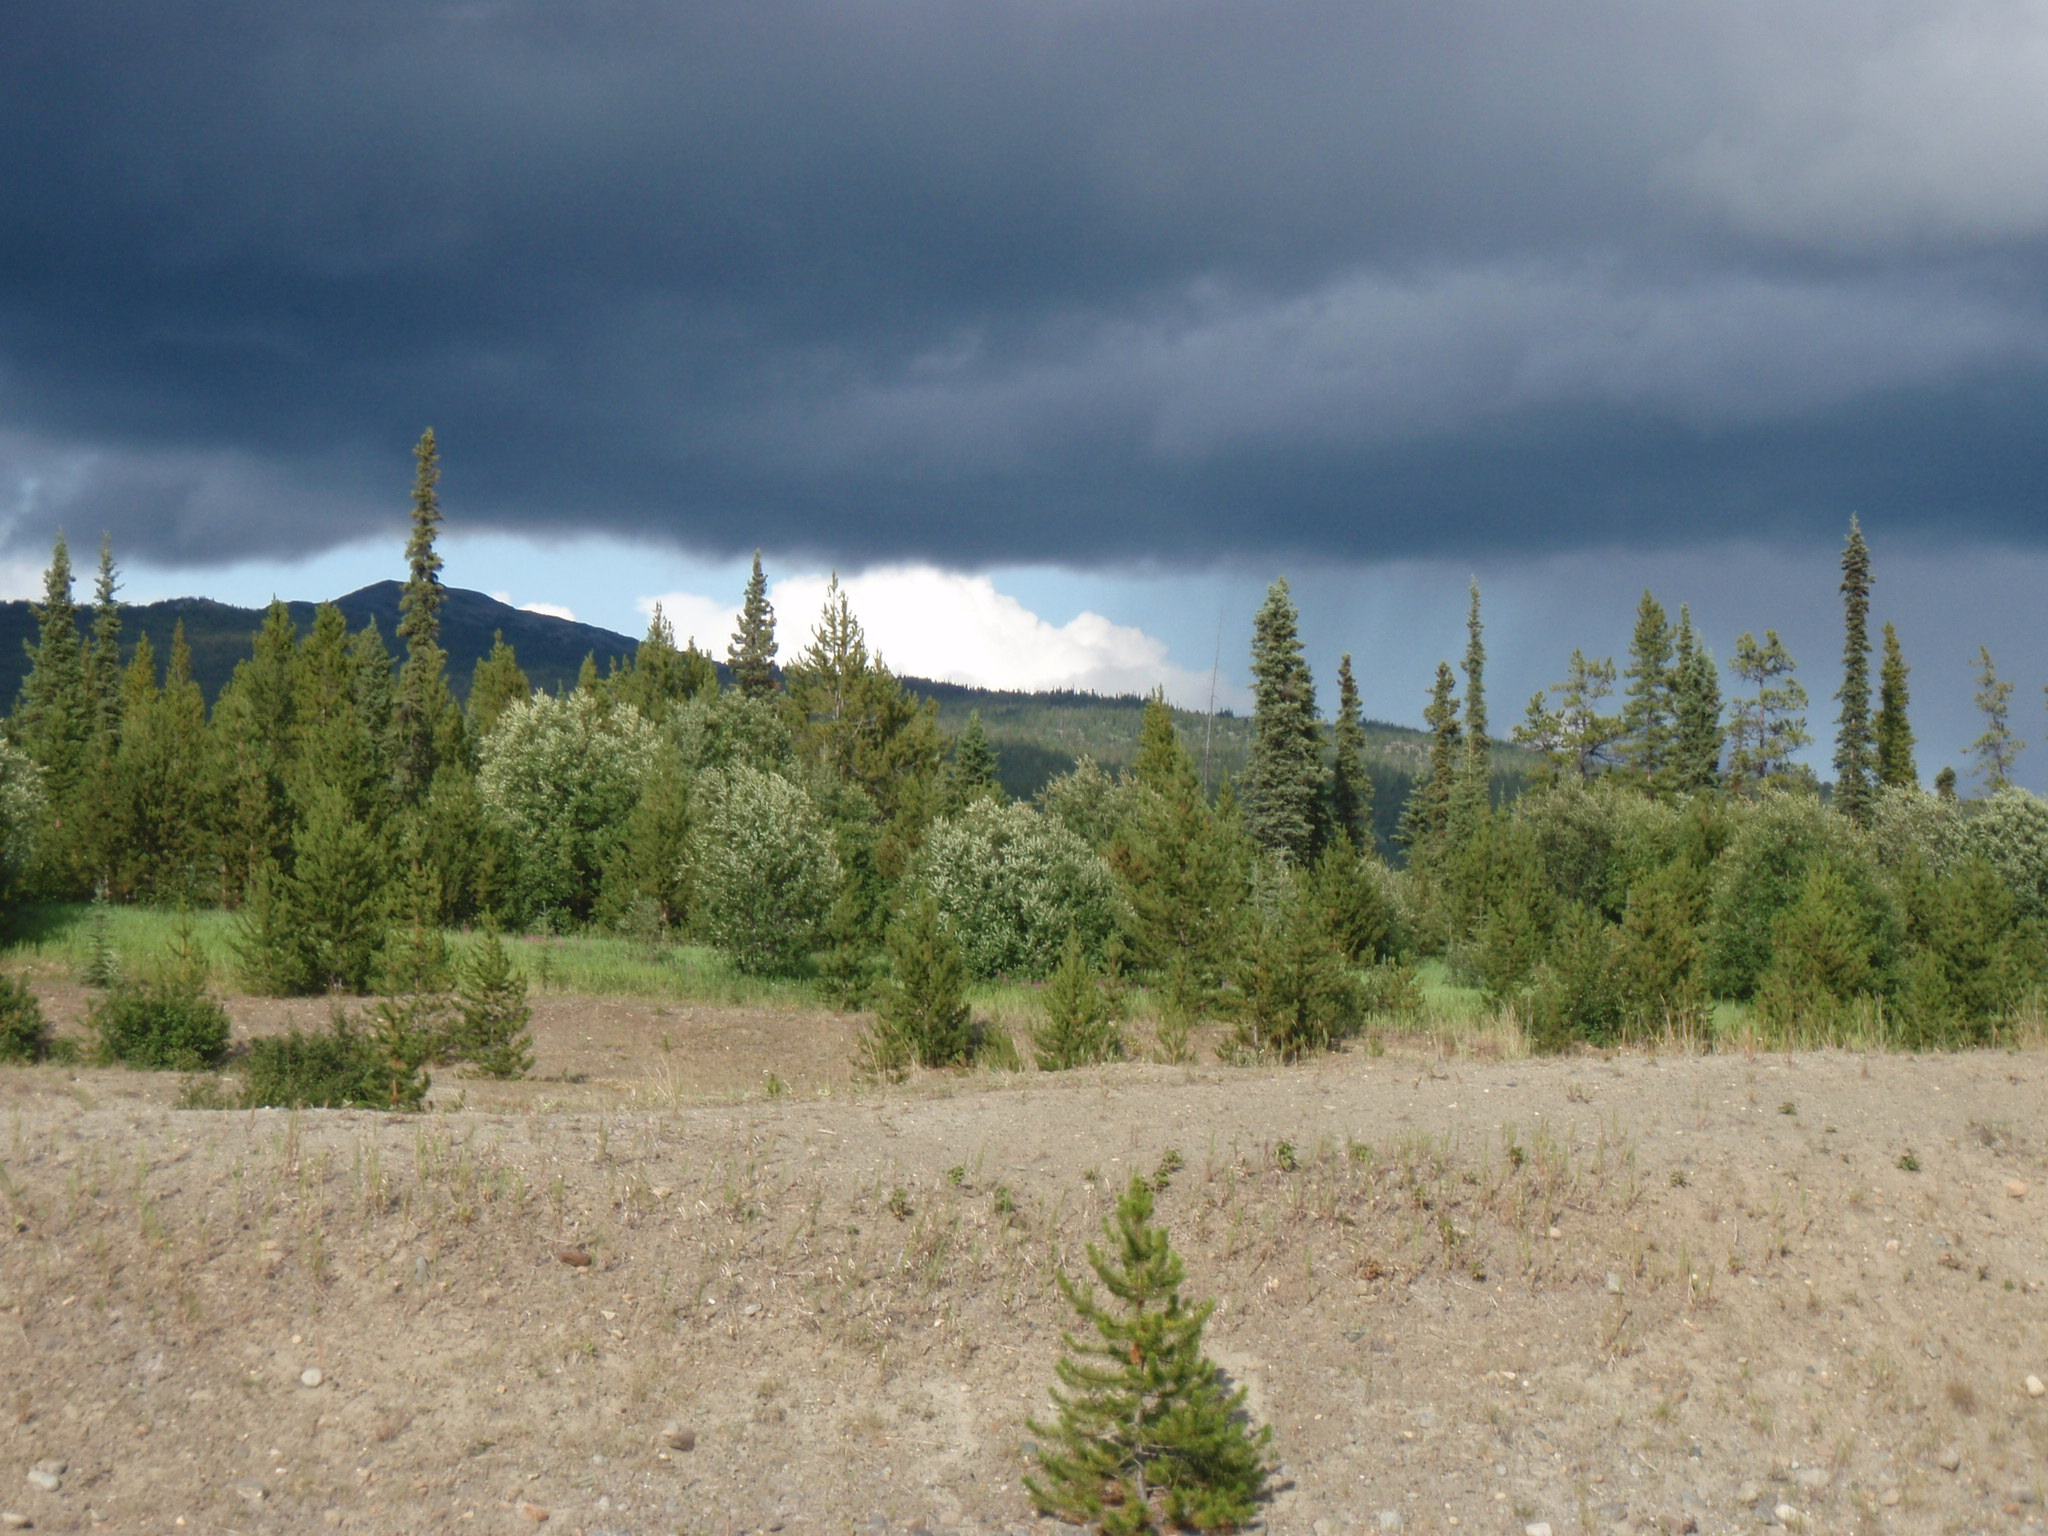 Patches of dark clouds and sunlight over British Columbia forest